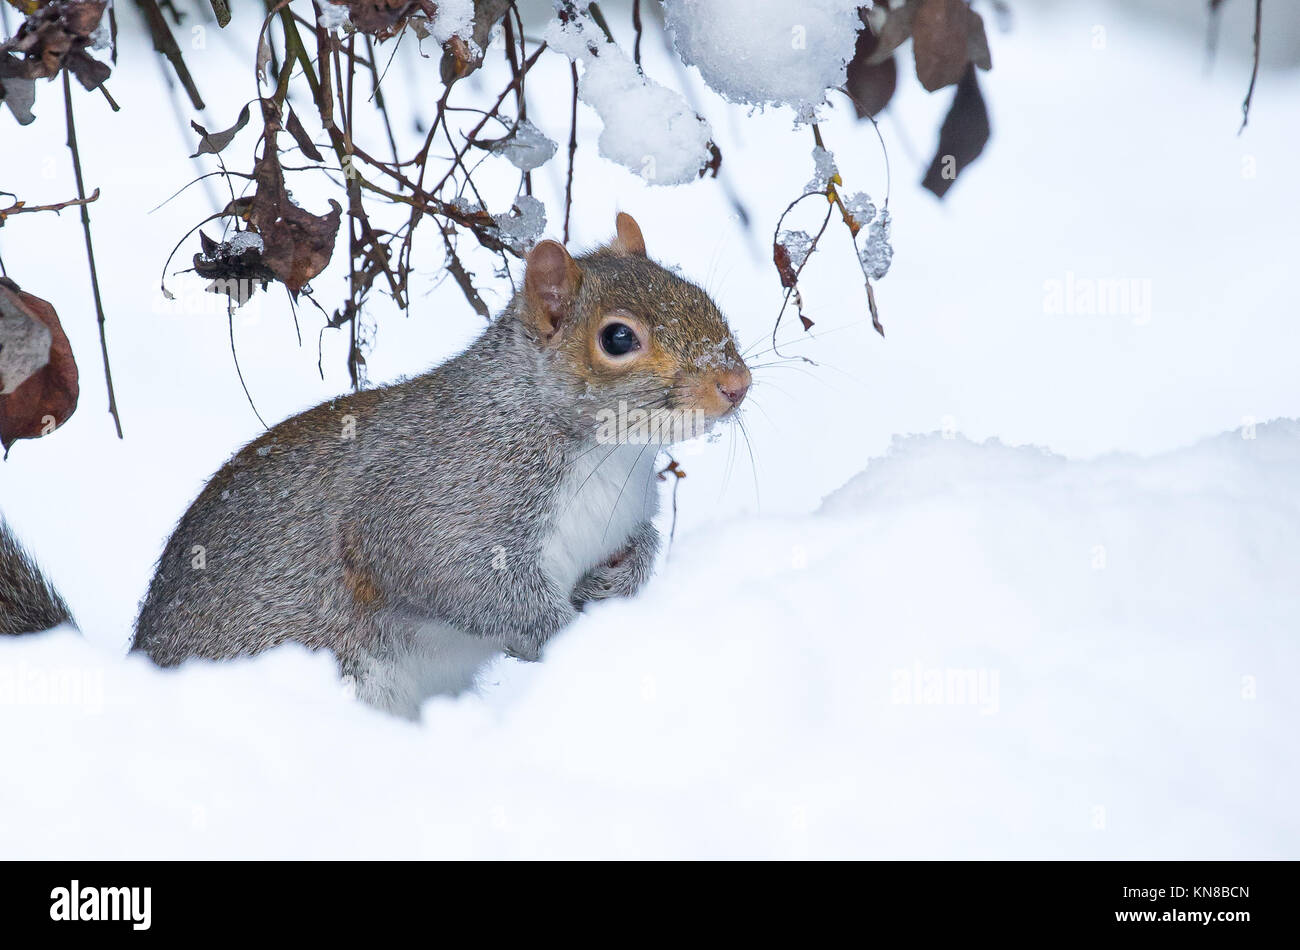 Kidderminster, UK. 11th December, 2017. UK weather: winter snow still causing problems for travellers around Worcestershire and particularly for this confused UK grey squirrel (Sciurus carolinensis) sitting isolated in the middle of a garden snow drift. Credit: Lee Hudson/Alamy Live News Stock Photo